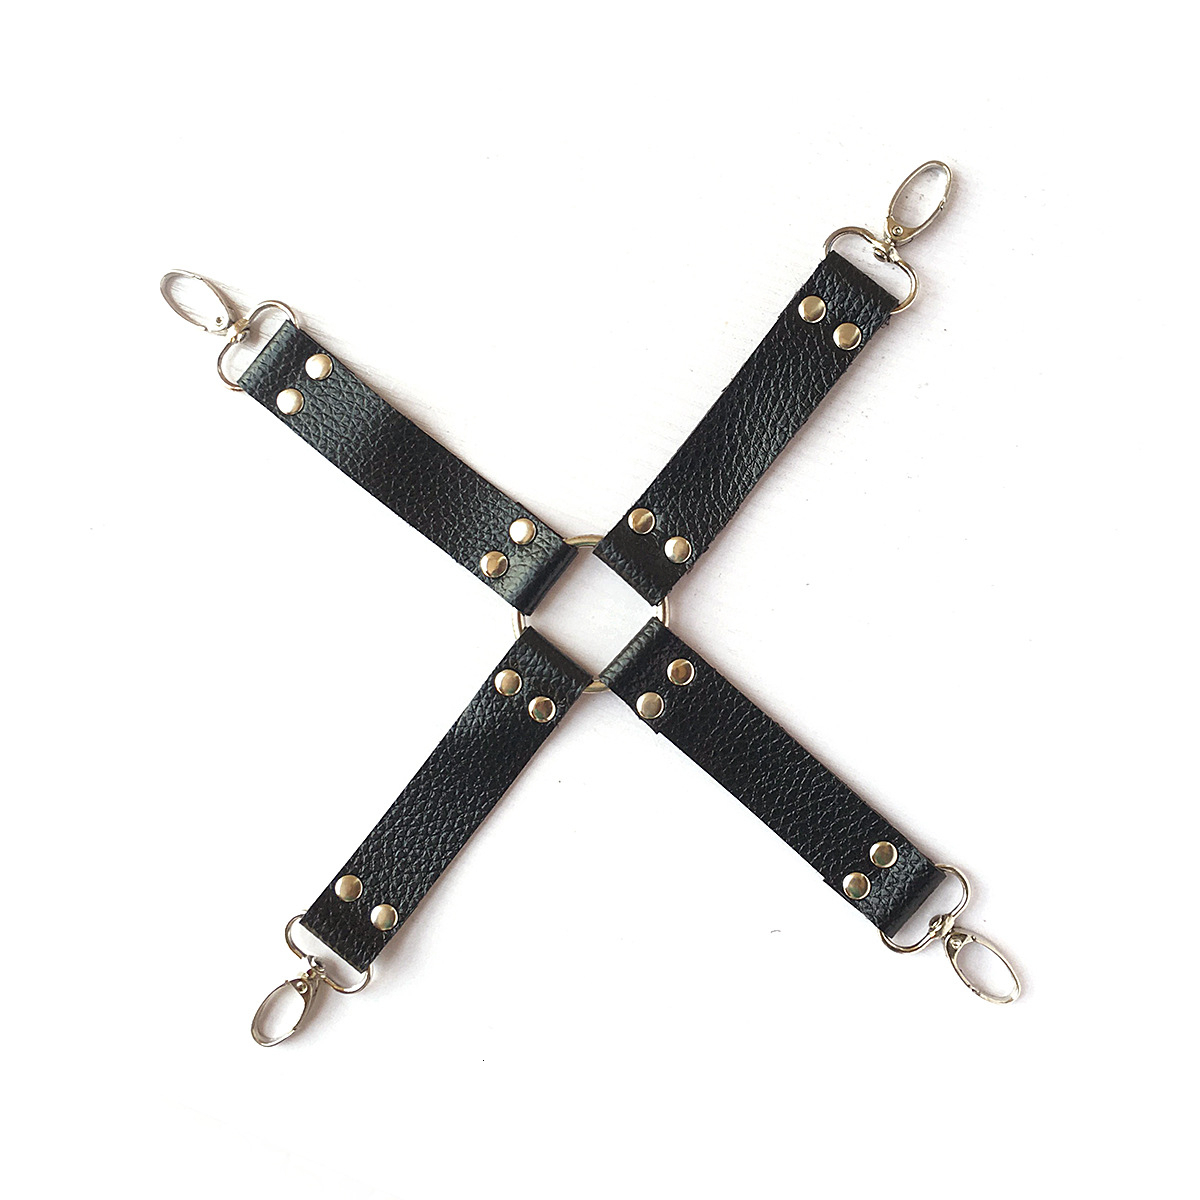 10 Pcs/set Bdsm Bondage Set Tail Anal Plug Handcuffs Nipple Clamps Gag Whip Rope Toys For Couples